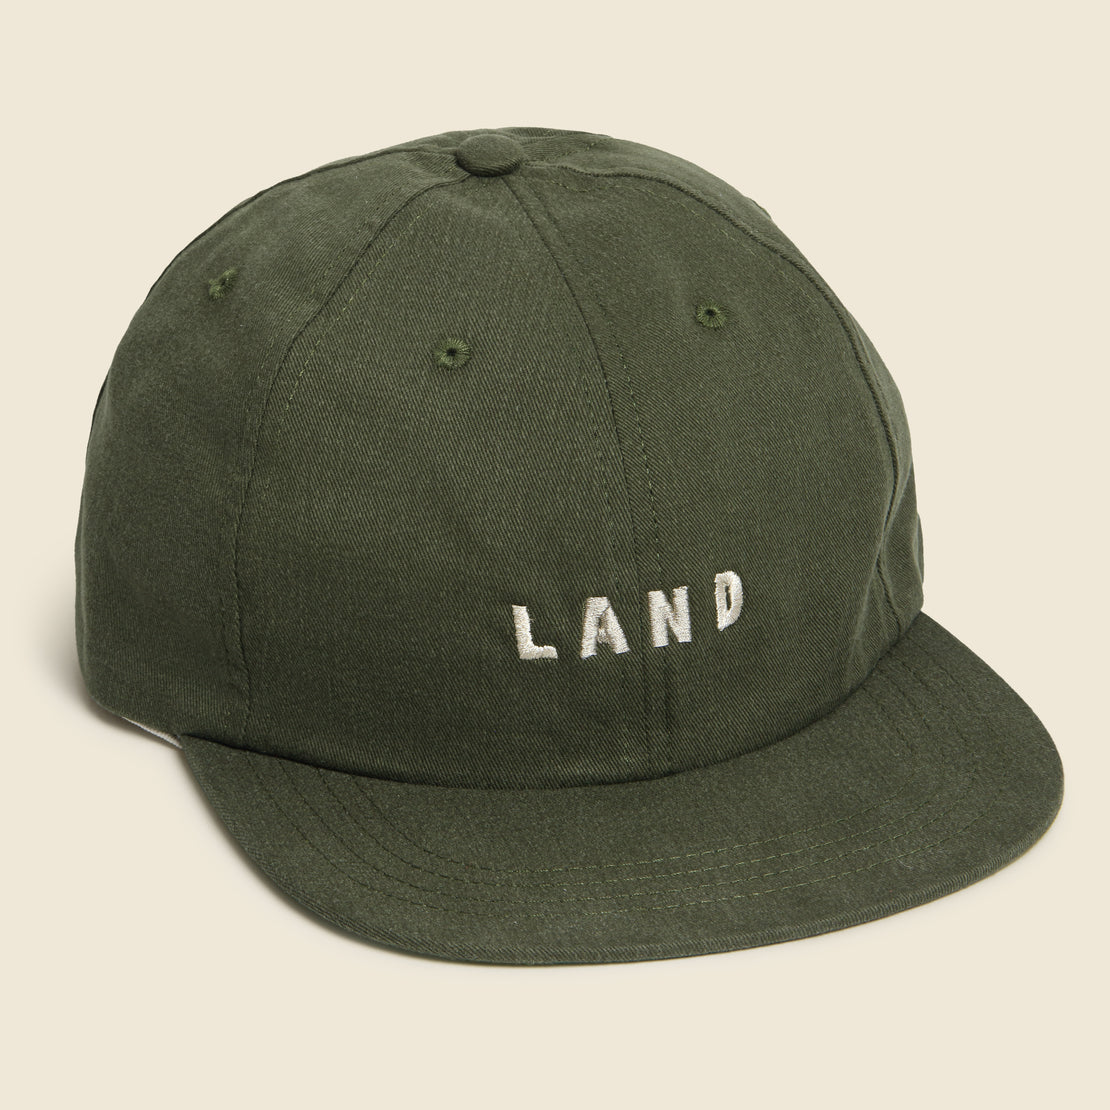 House of LAND LAND Cap - Olive